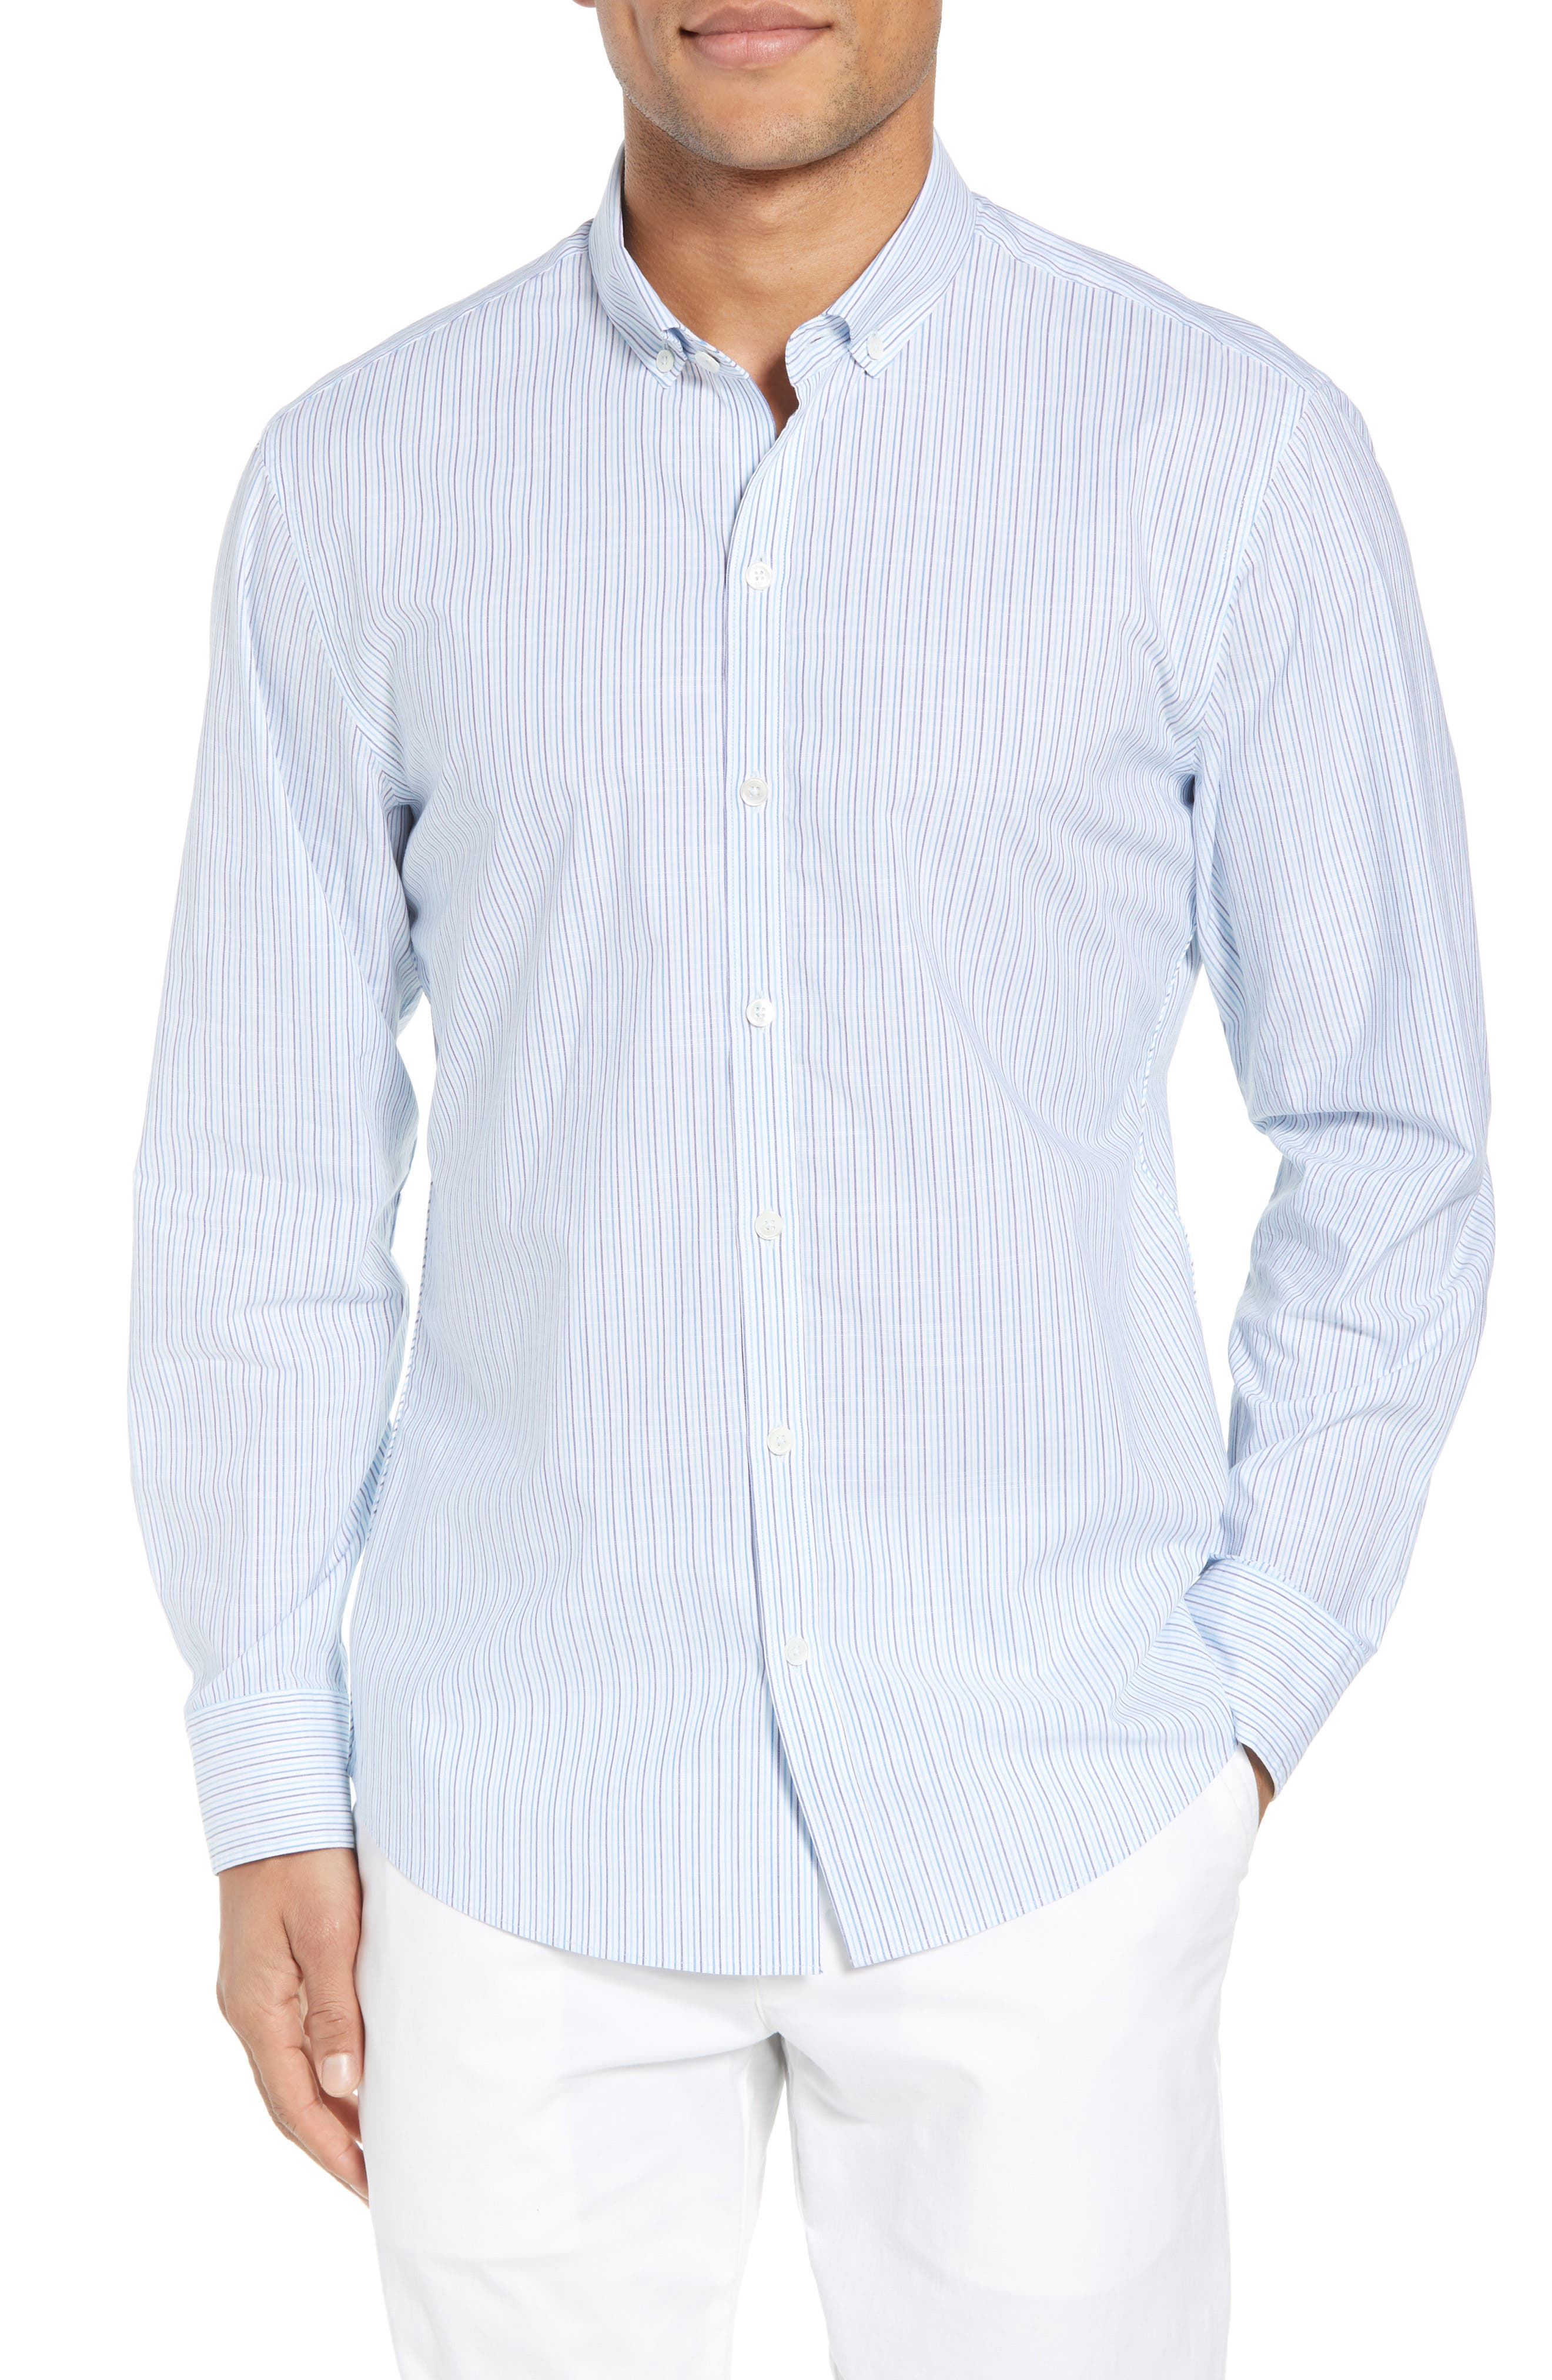 Skeeter Stripe Sport Shirt,                             Main thumbnail 1, color,                             Aqua